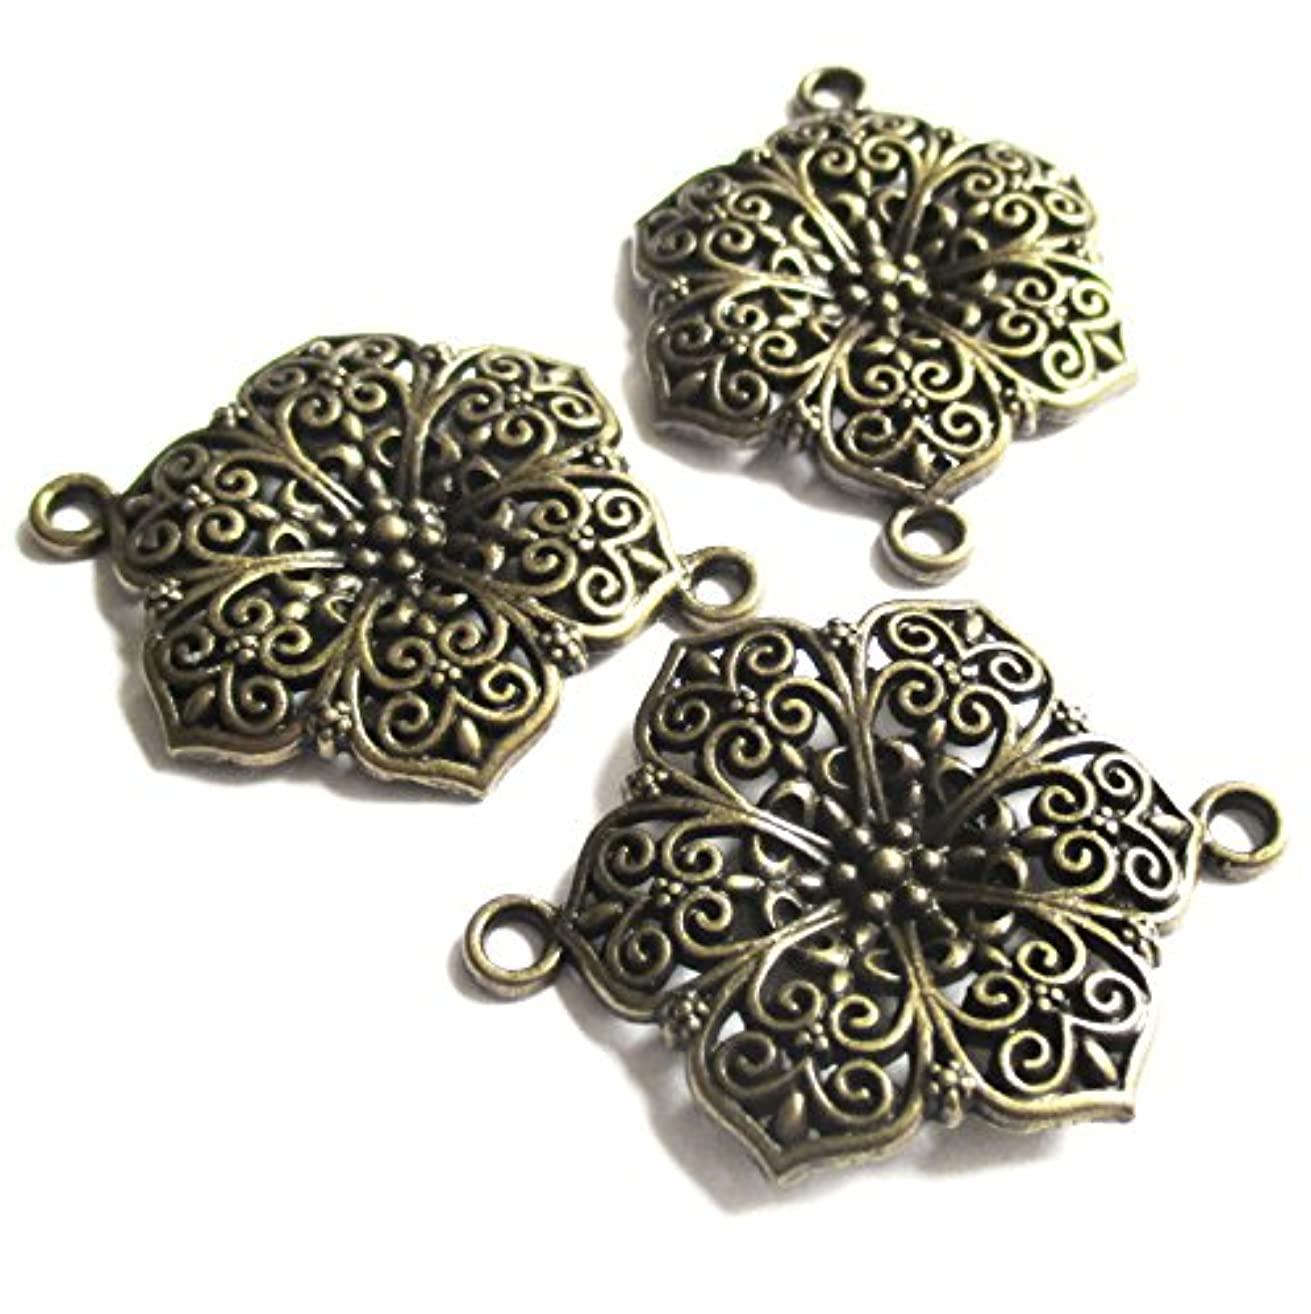 Heather's cf 15 Pieces Brass Tone Hollow Pattern Flower Spacer Connector Findings (2 Holes)Jewelry Making 41X29mm iyilqd1176763894